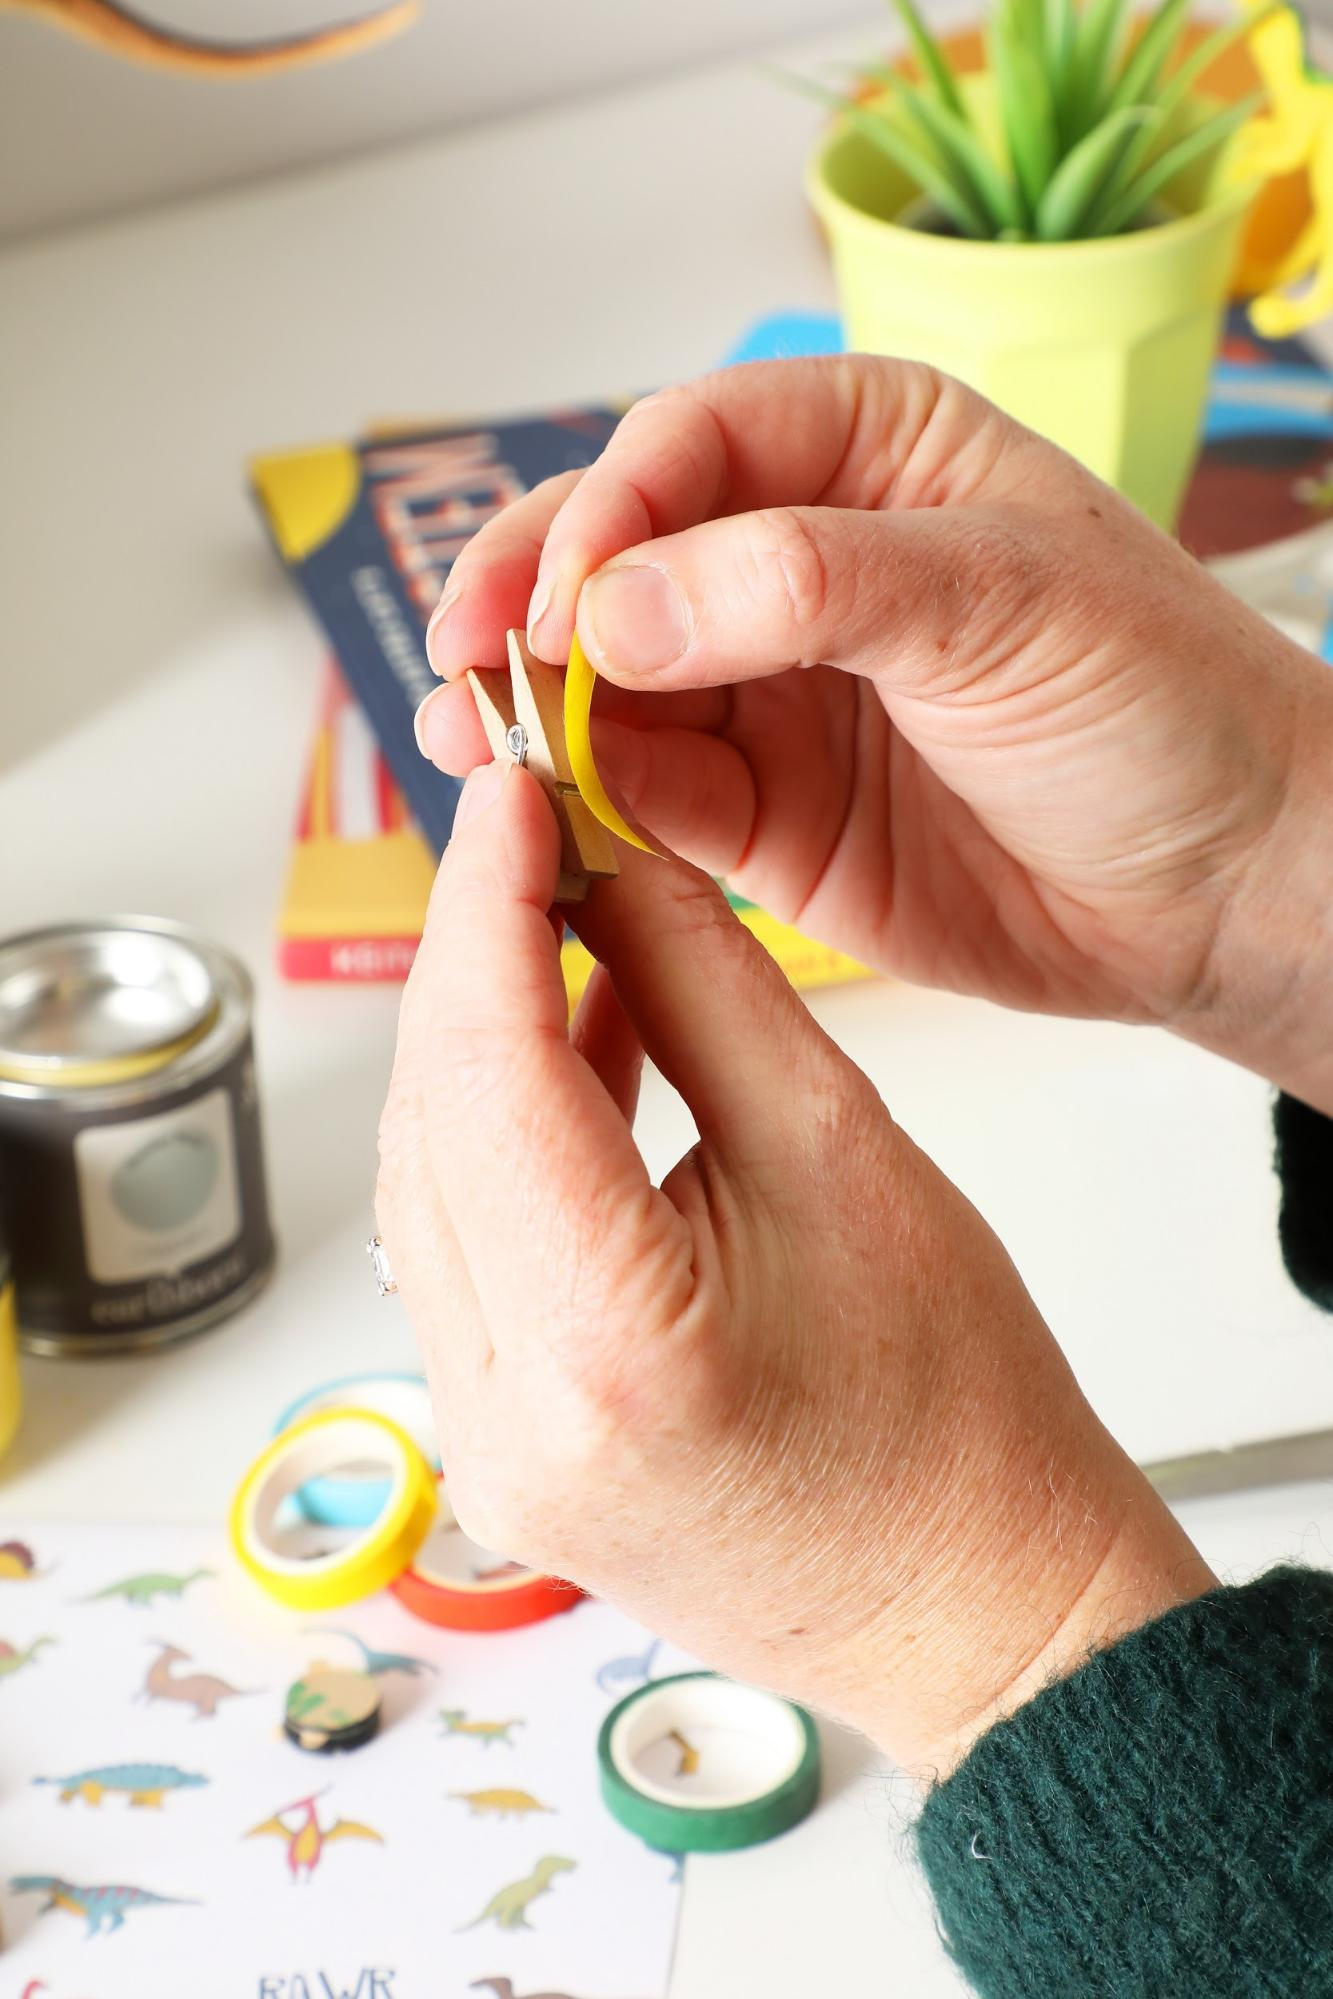 Covering craft pegs with washi tape